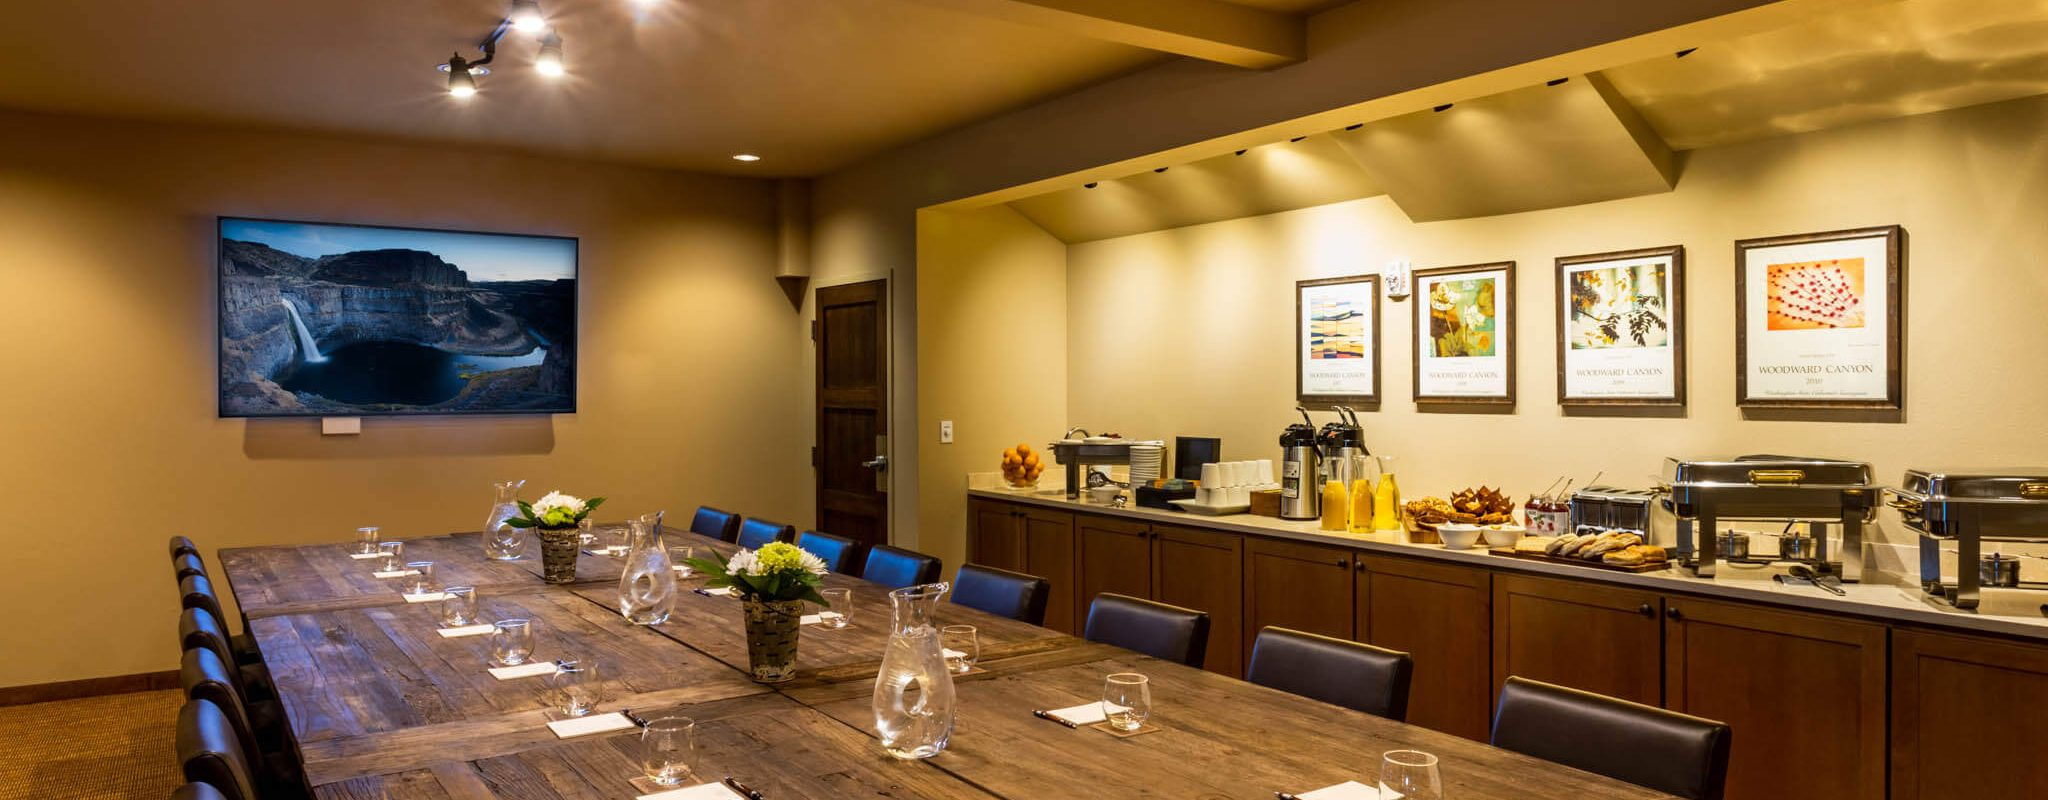 Meeting boardroom at the riverfront lodge in Washington